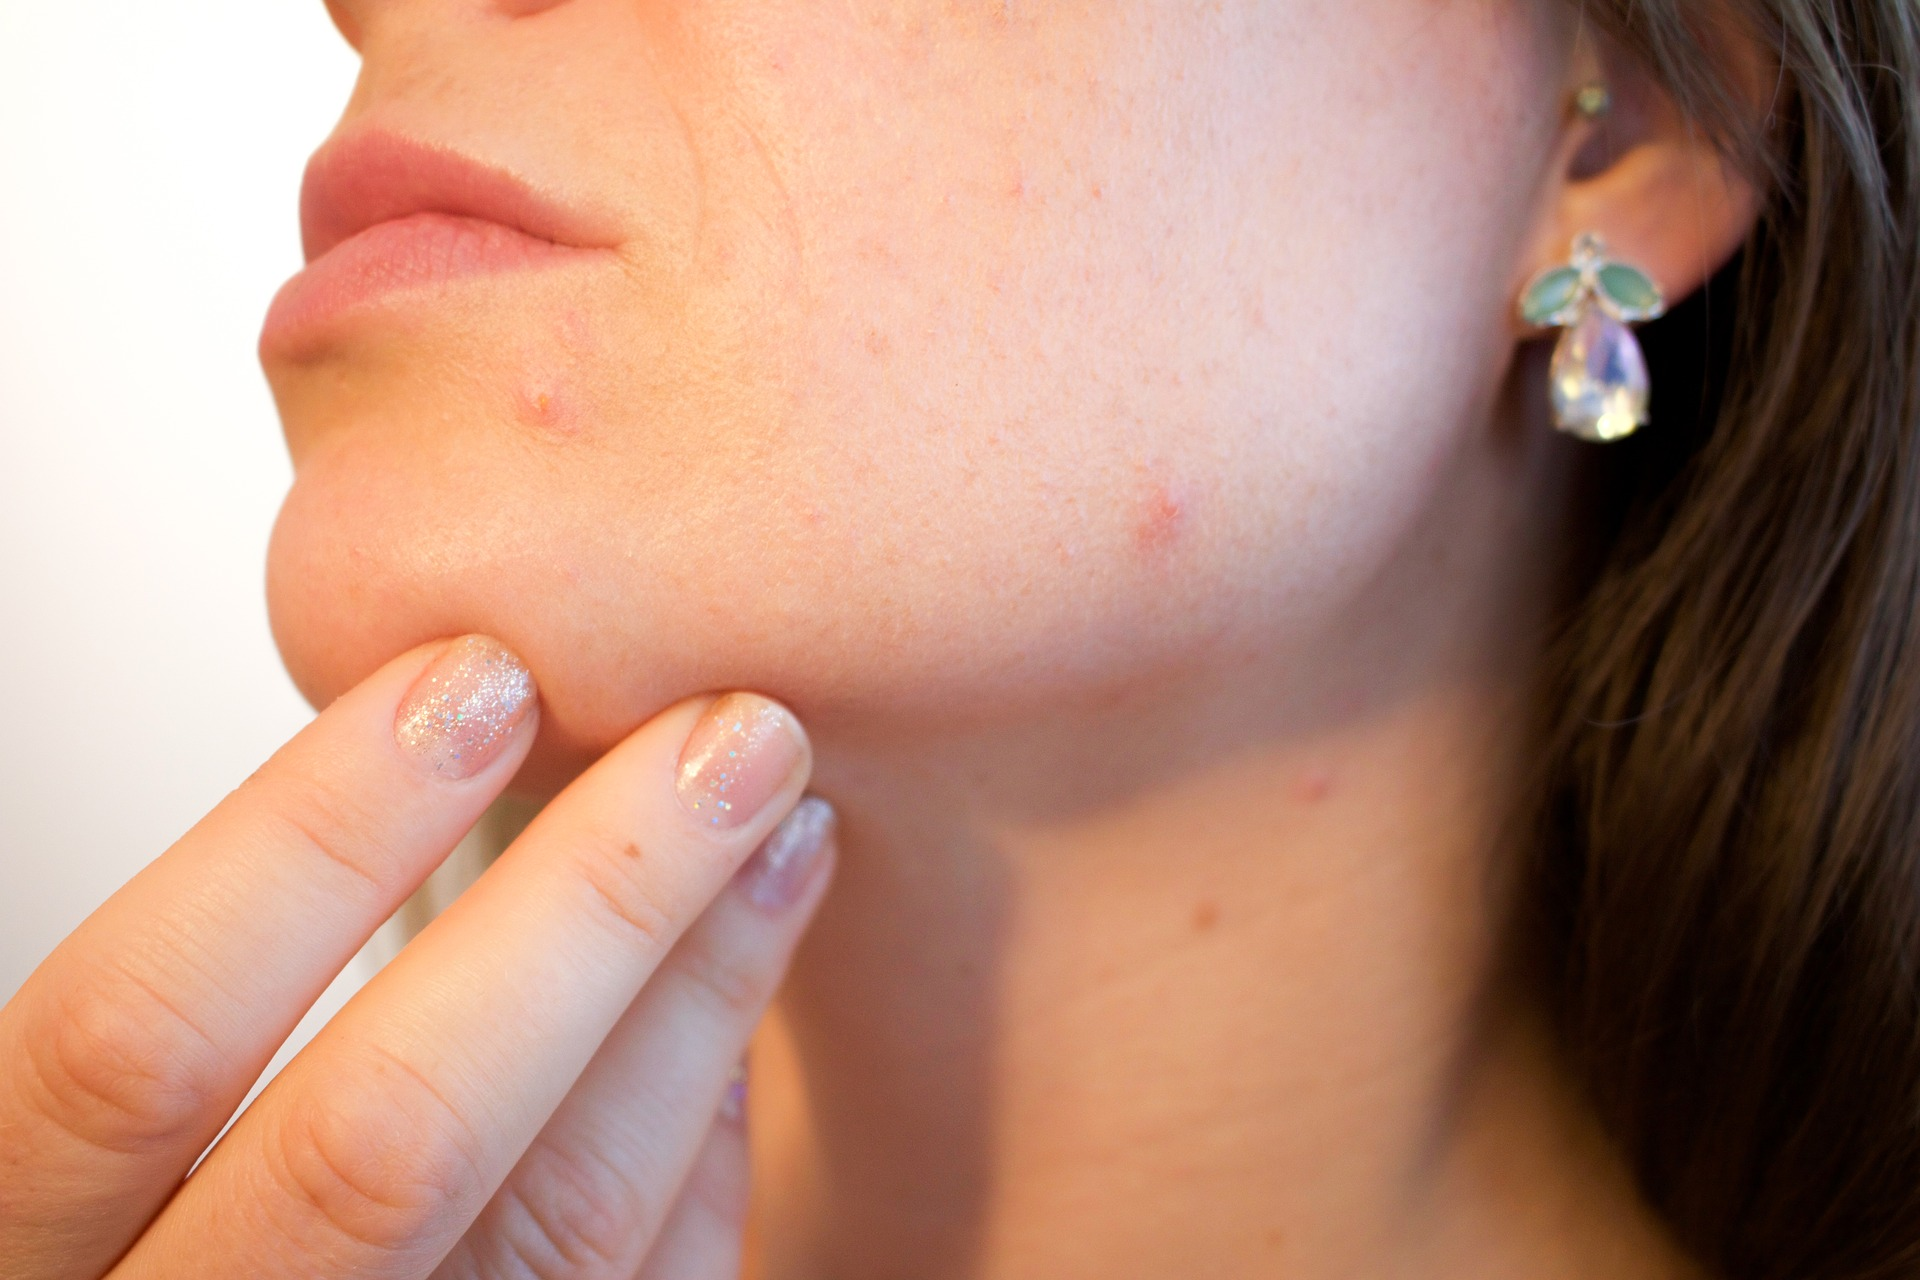 Do you get pimples very often? Here's what the location of your acne is telling about your health